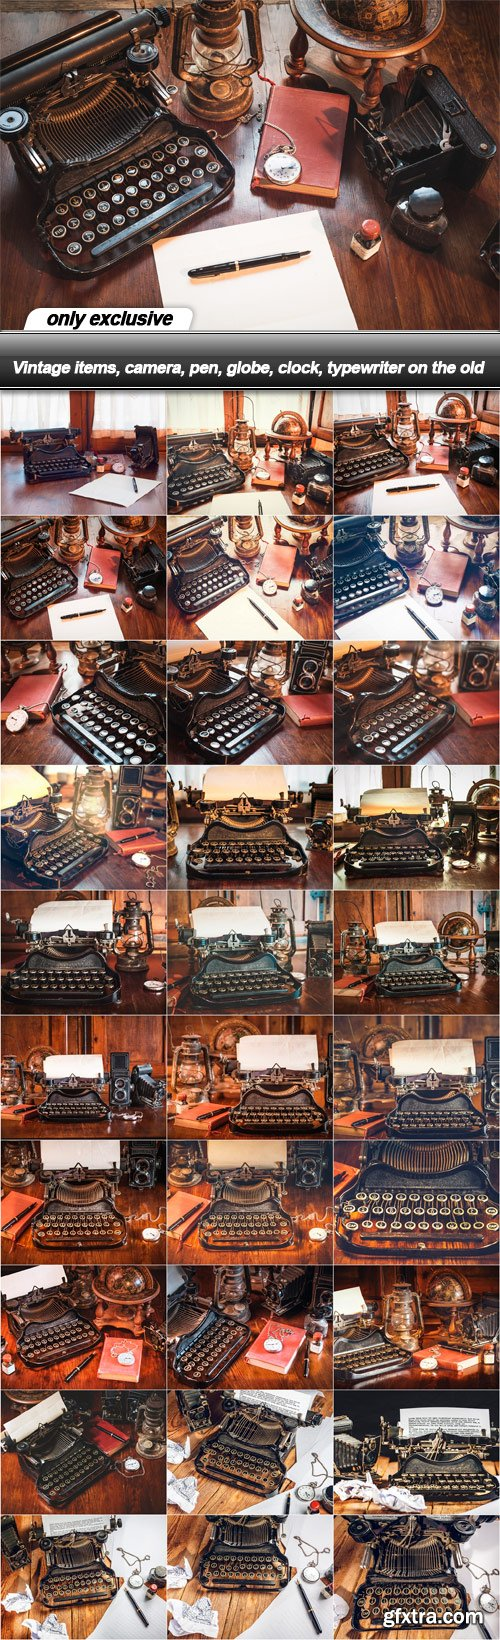 Vintage items, camera, pen, globe, clock, typewriter on the old - 30 UHQ JPEG